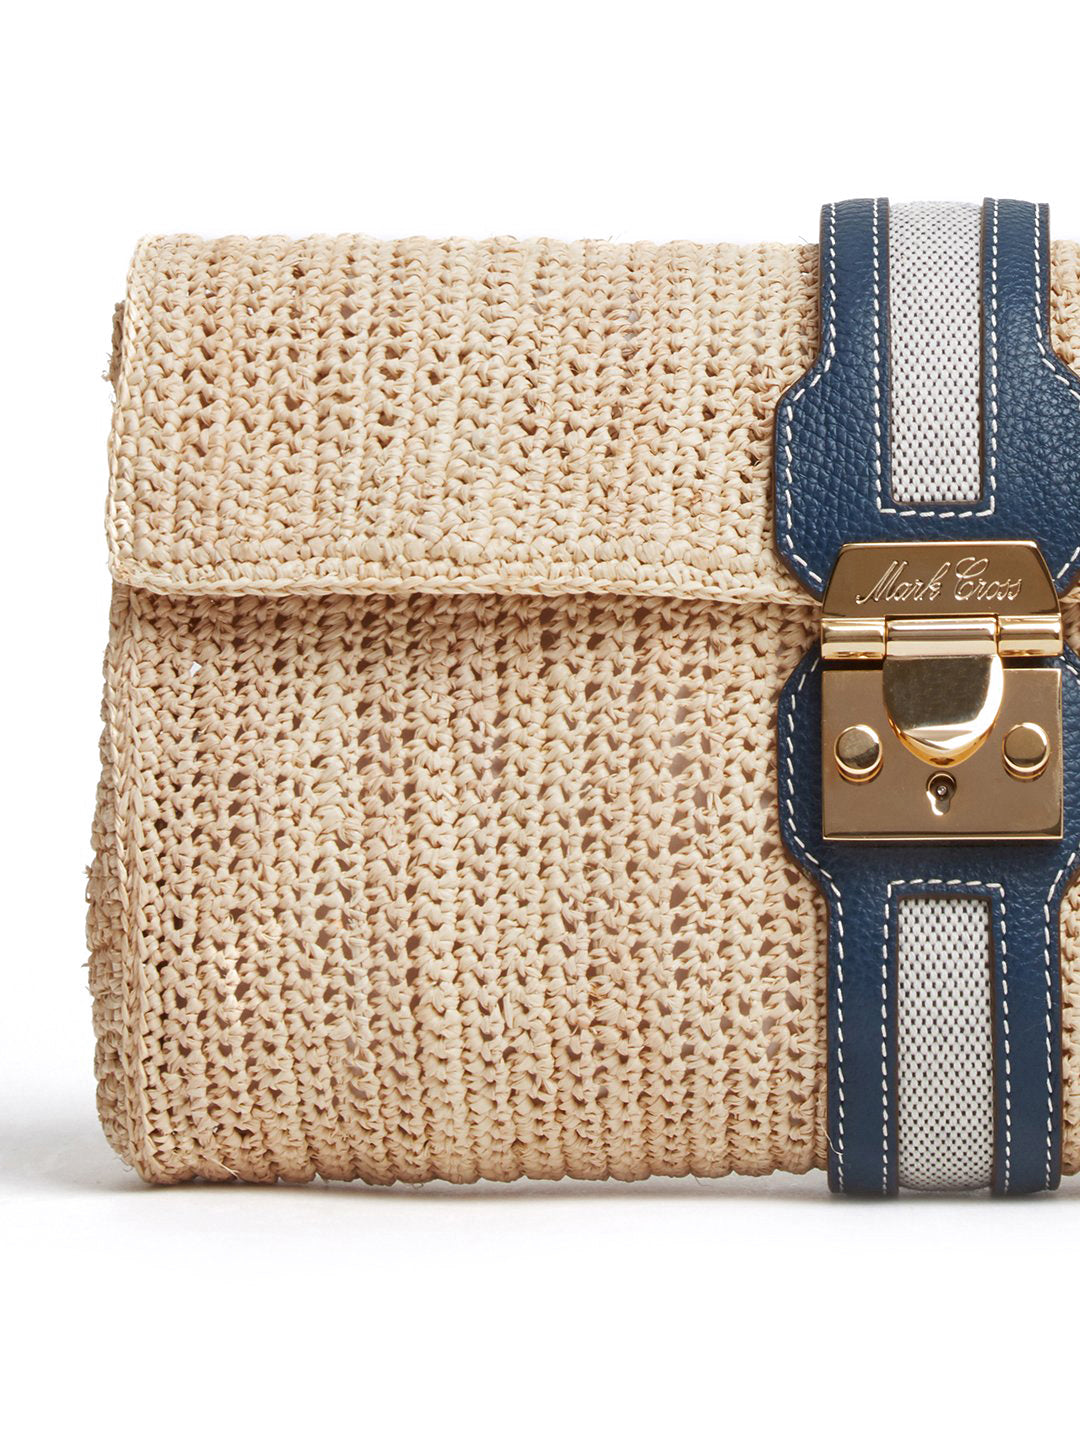 Mark Cross Sylvette Raffia & Leather Clutch Tumbled Grain Navy / Birdseye / Natural Raffia Detail